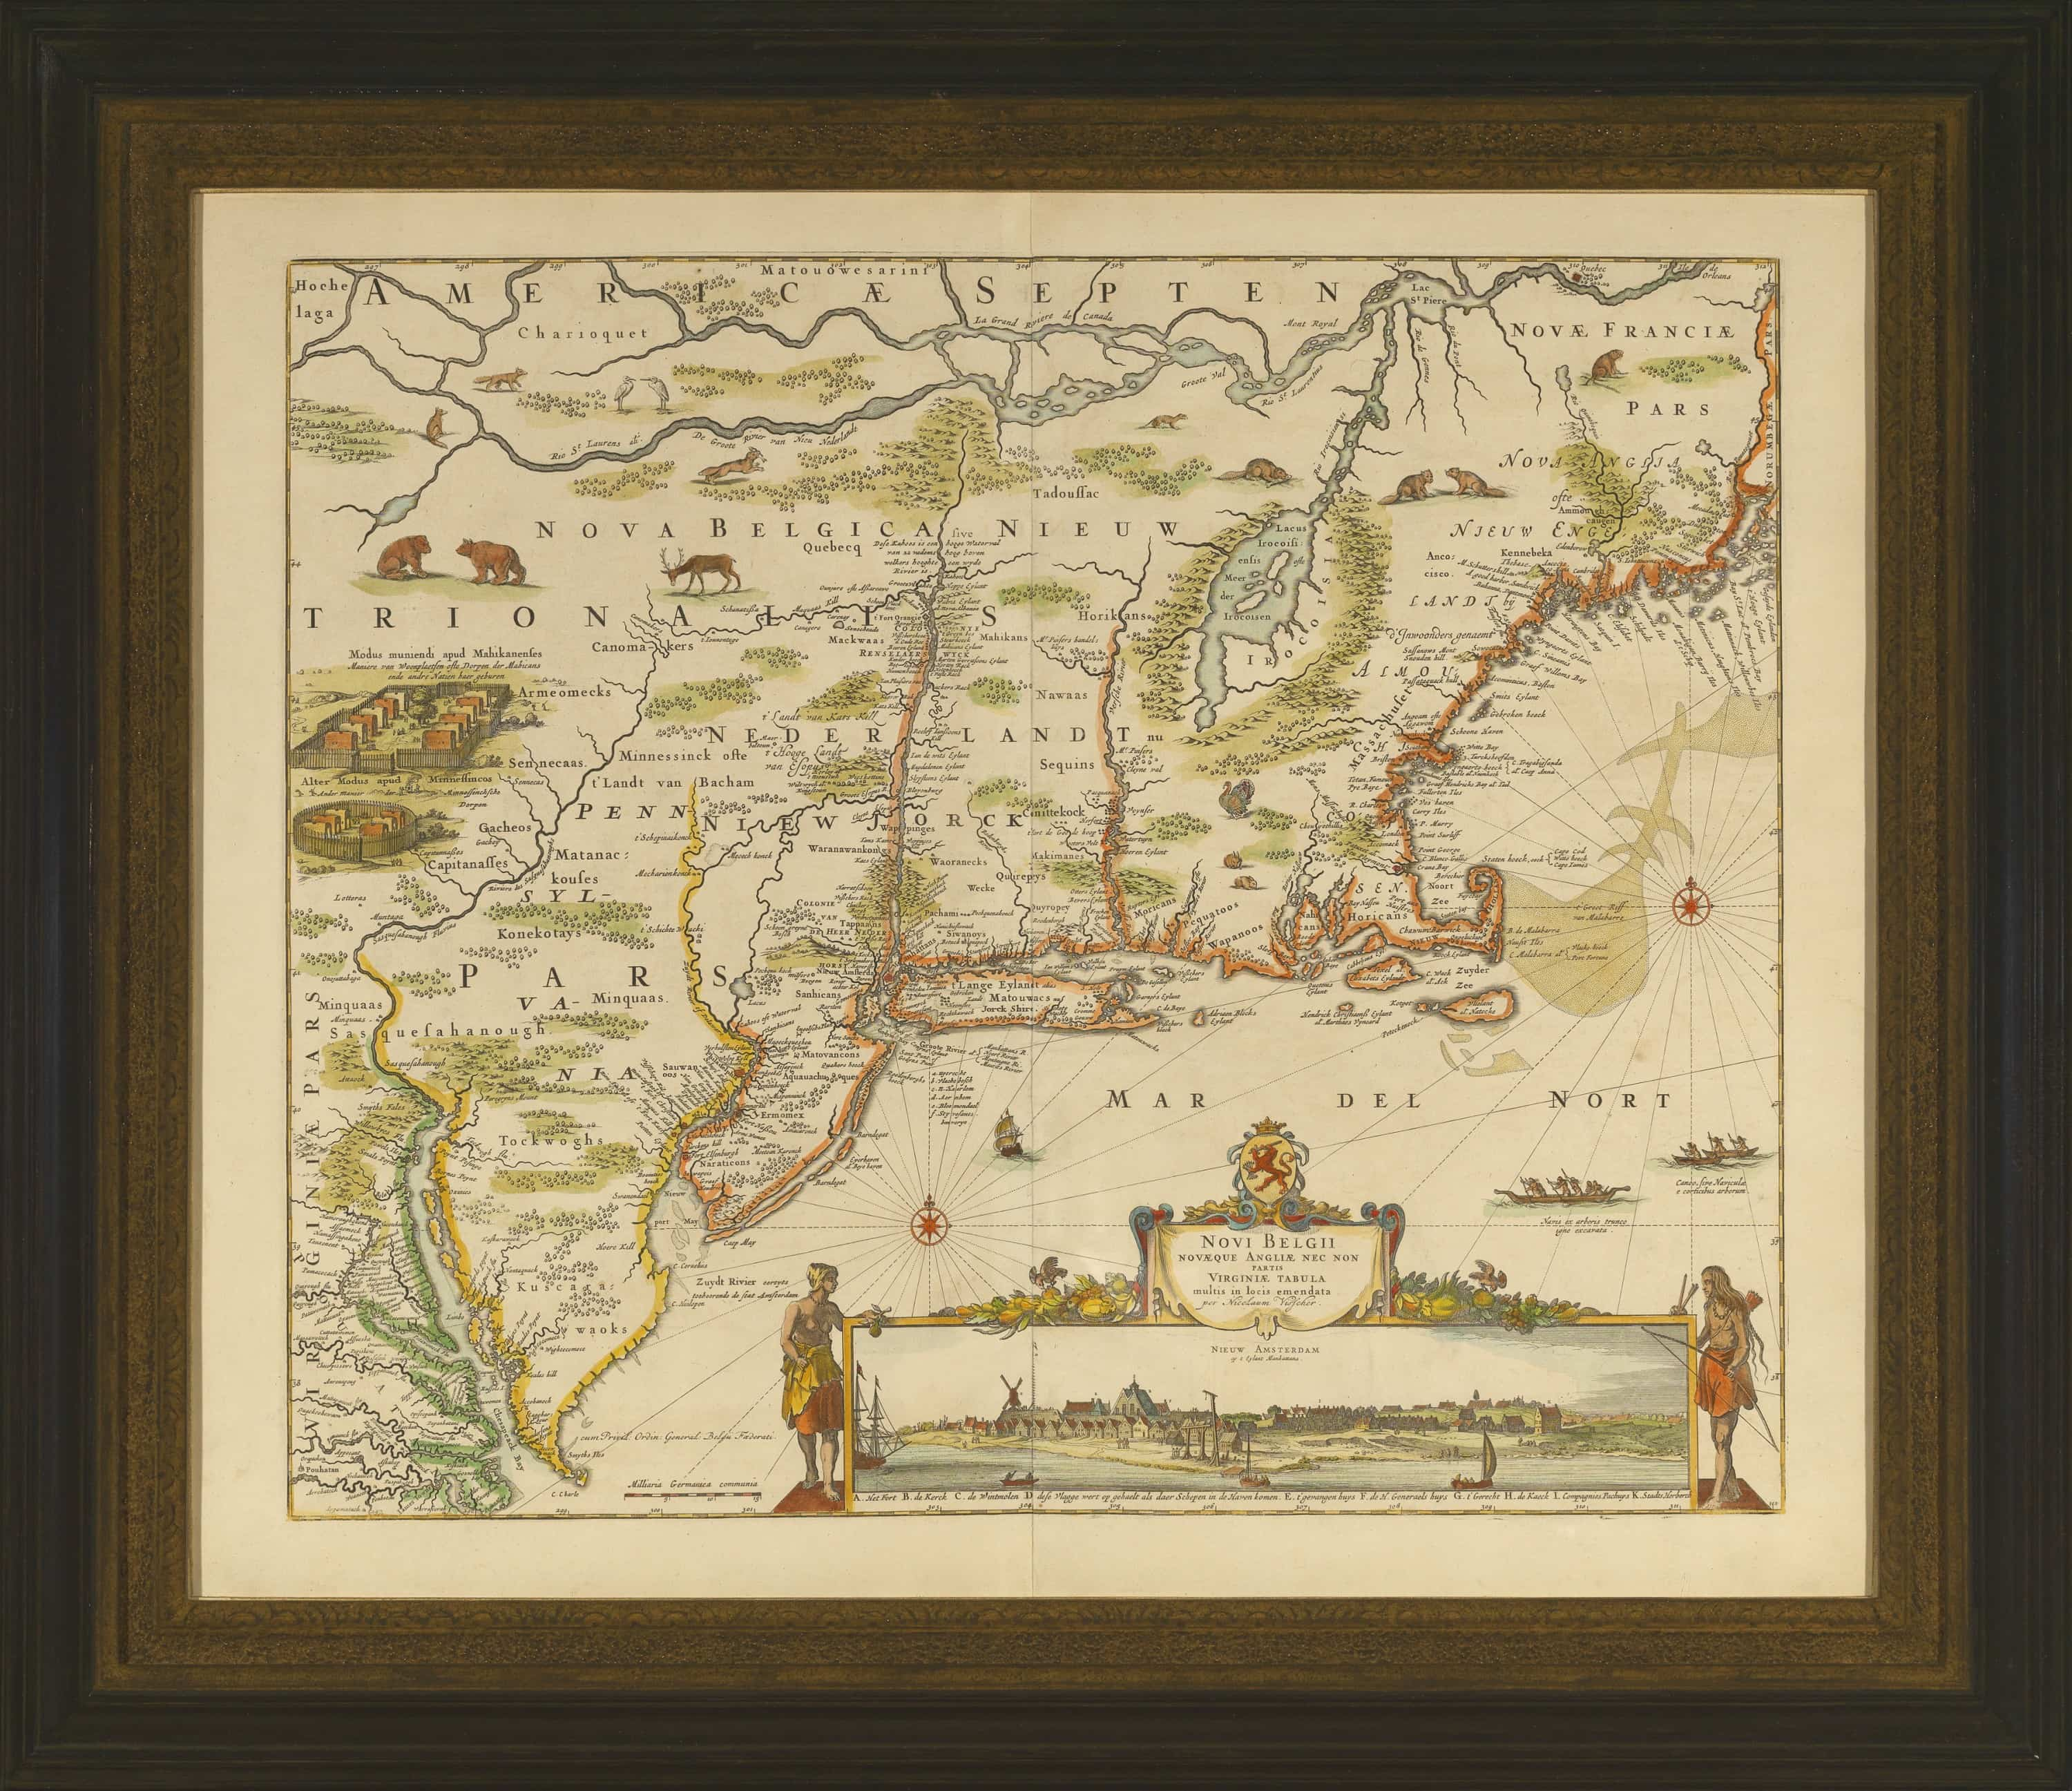 Beautiful example of an iconic map of the Northeast from 1684 Rare